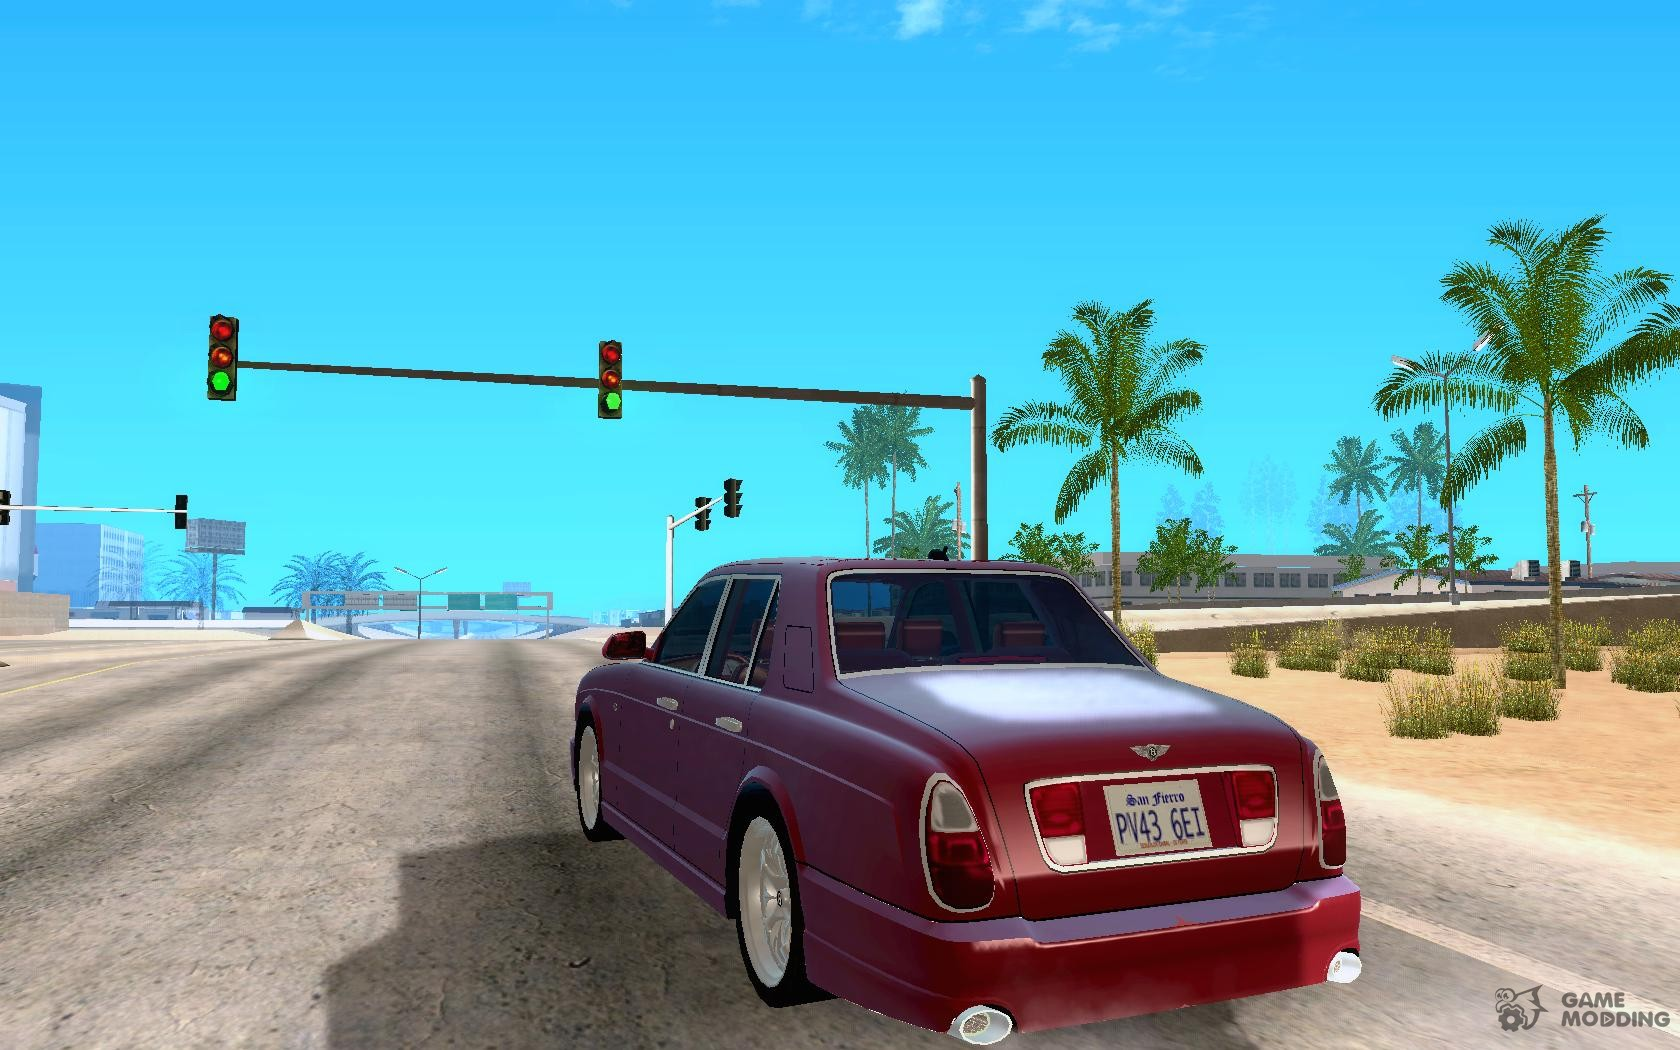 2005 bentley arnage r for gta san andreas bentley arnage r 2005 for gta san andreas rear left view vanachro Images